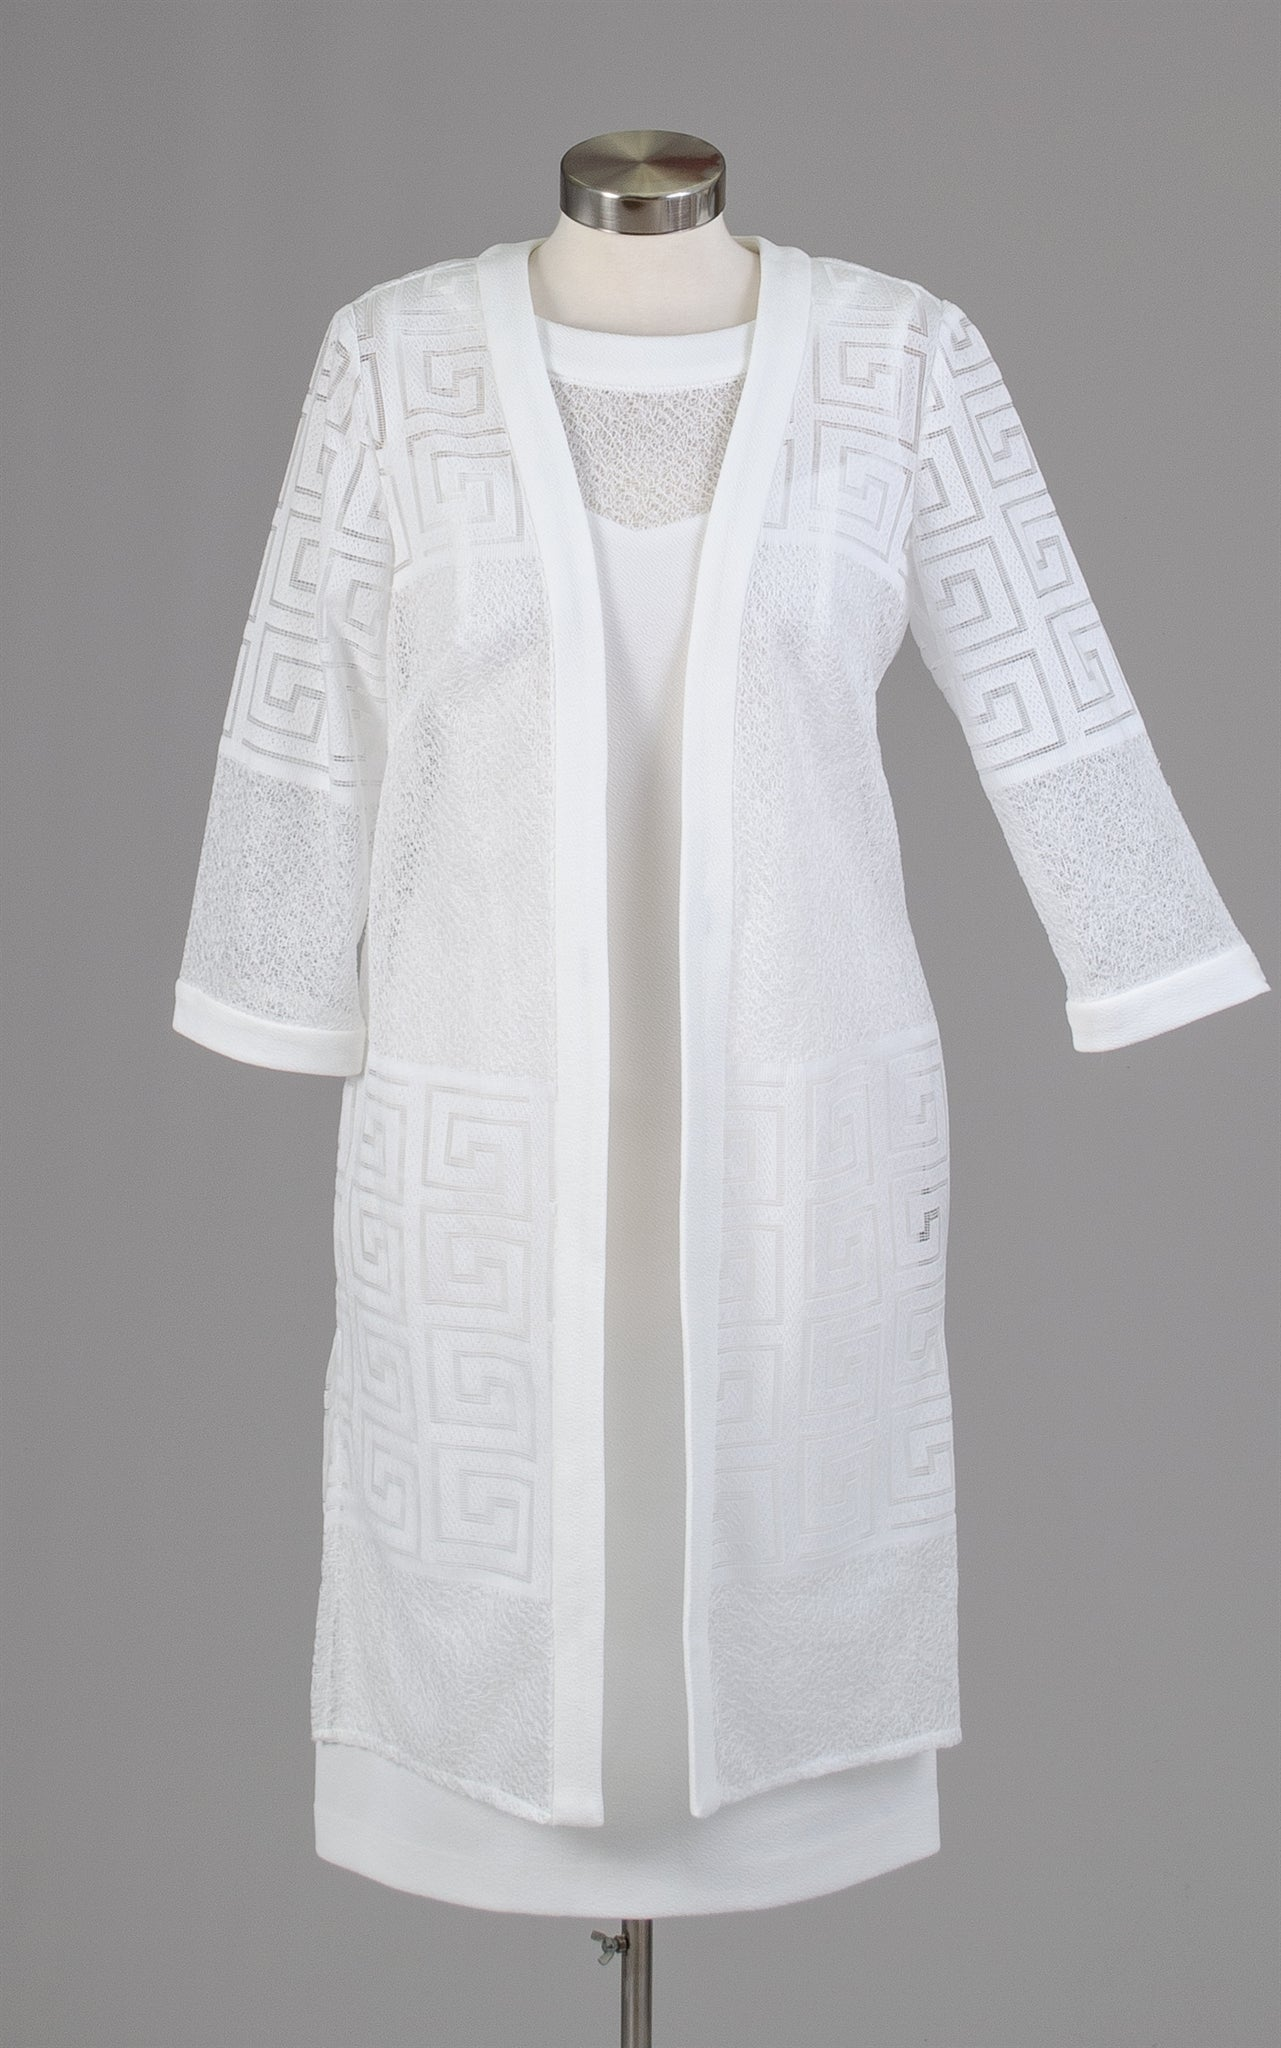 Maya Brook Jacket Dress 29140-White - Church Suits For Less